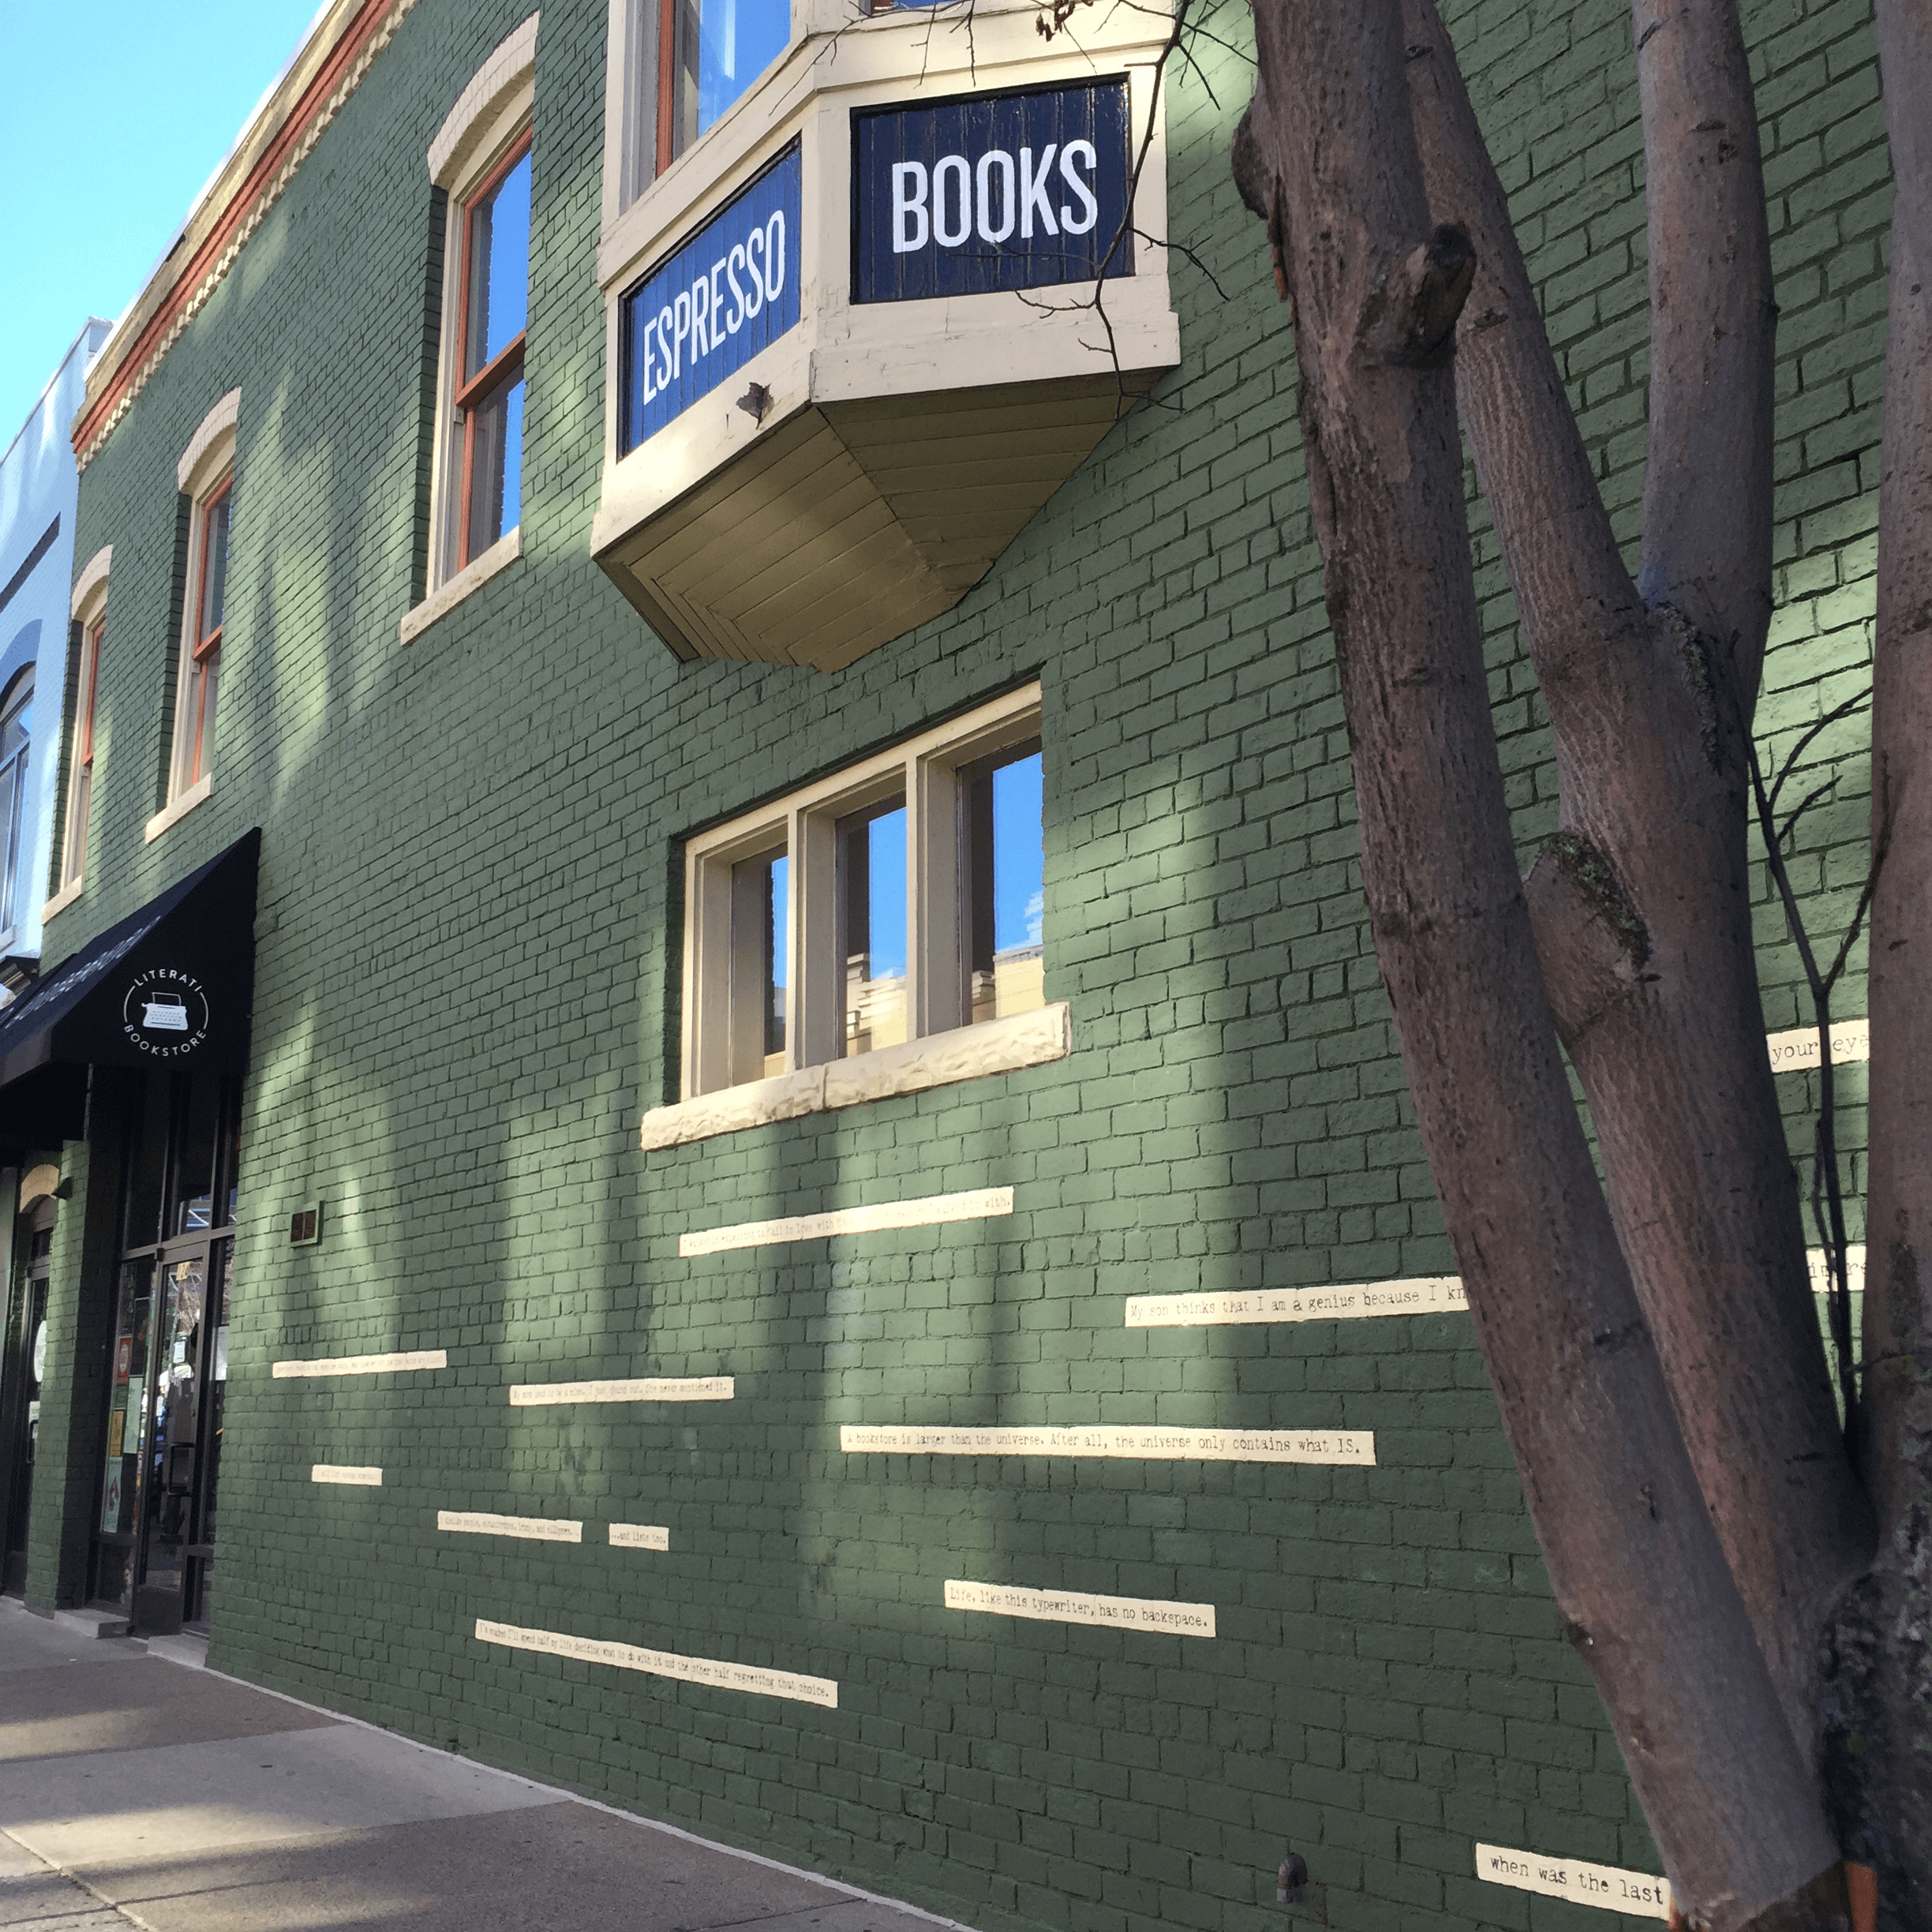 All done: branded awnings, bay window lettering, and a mural